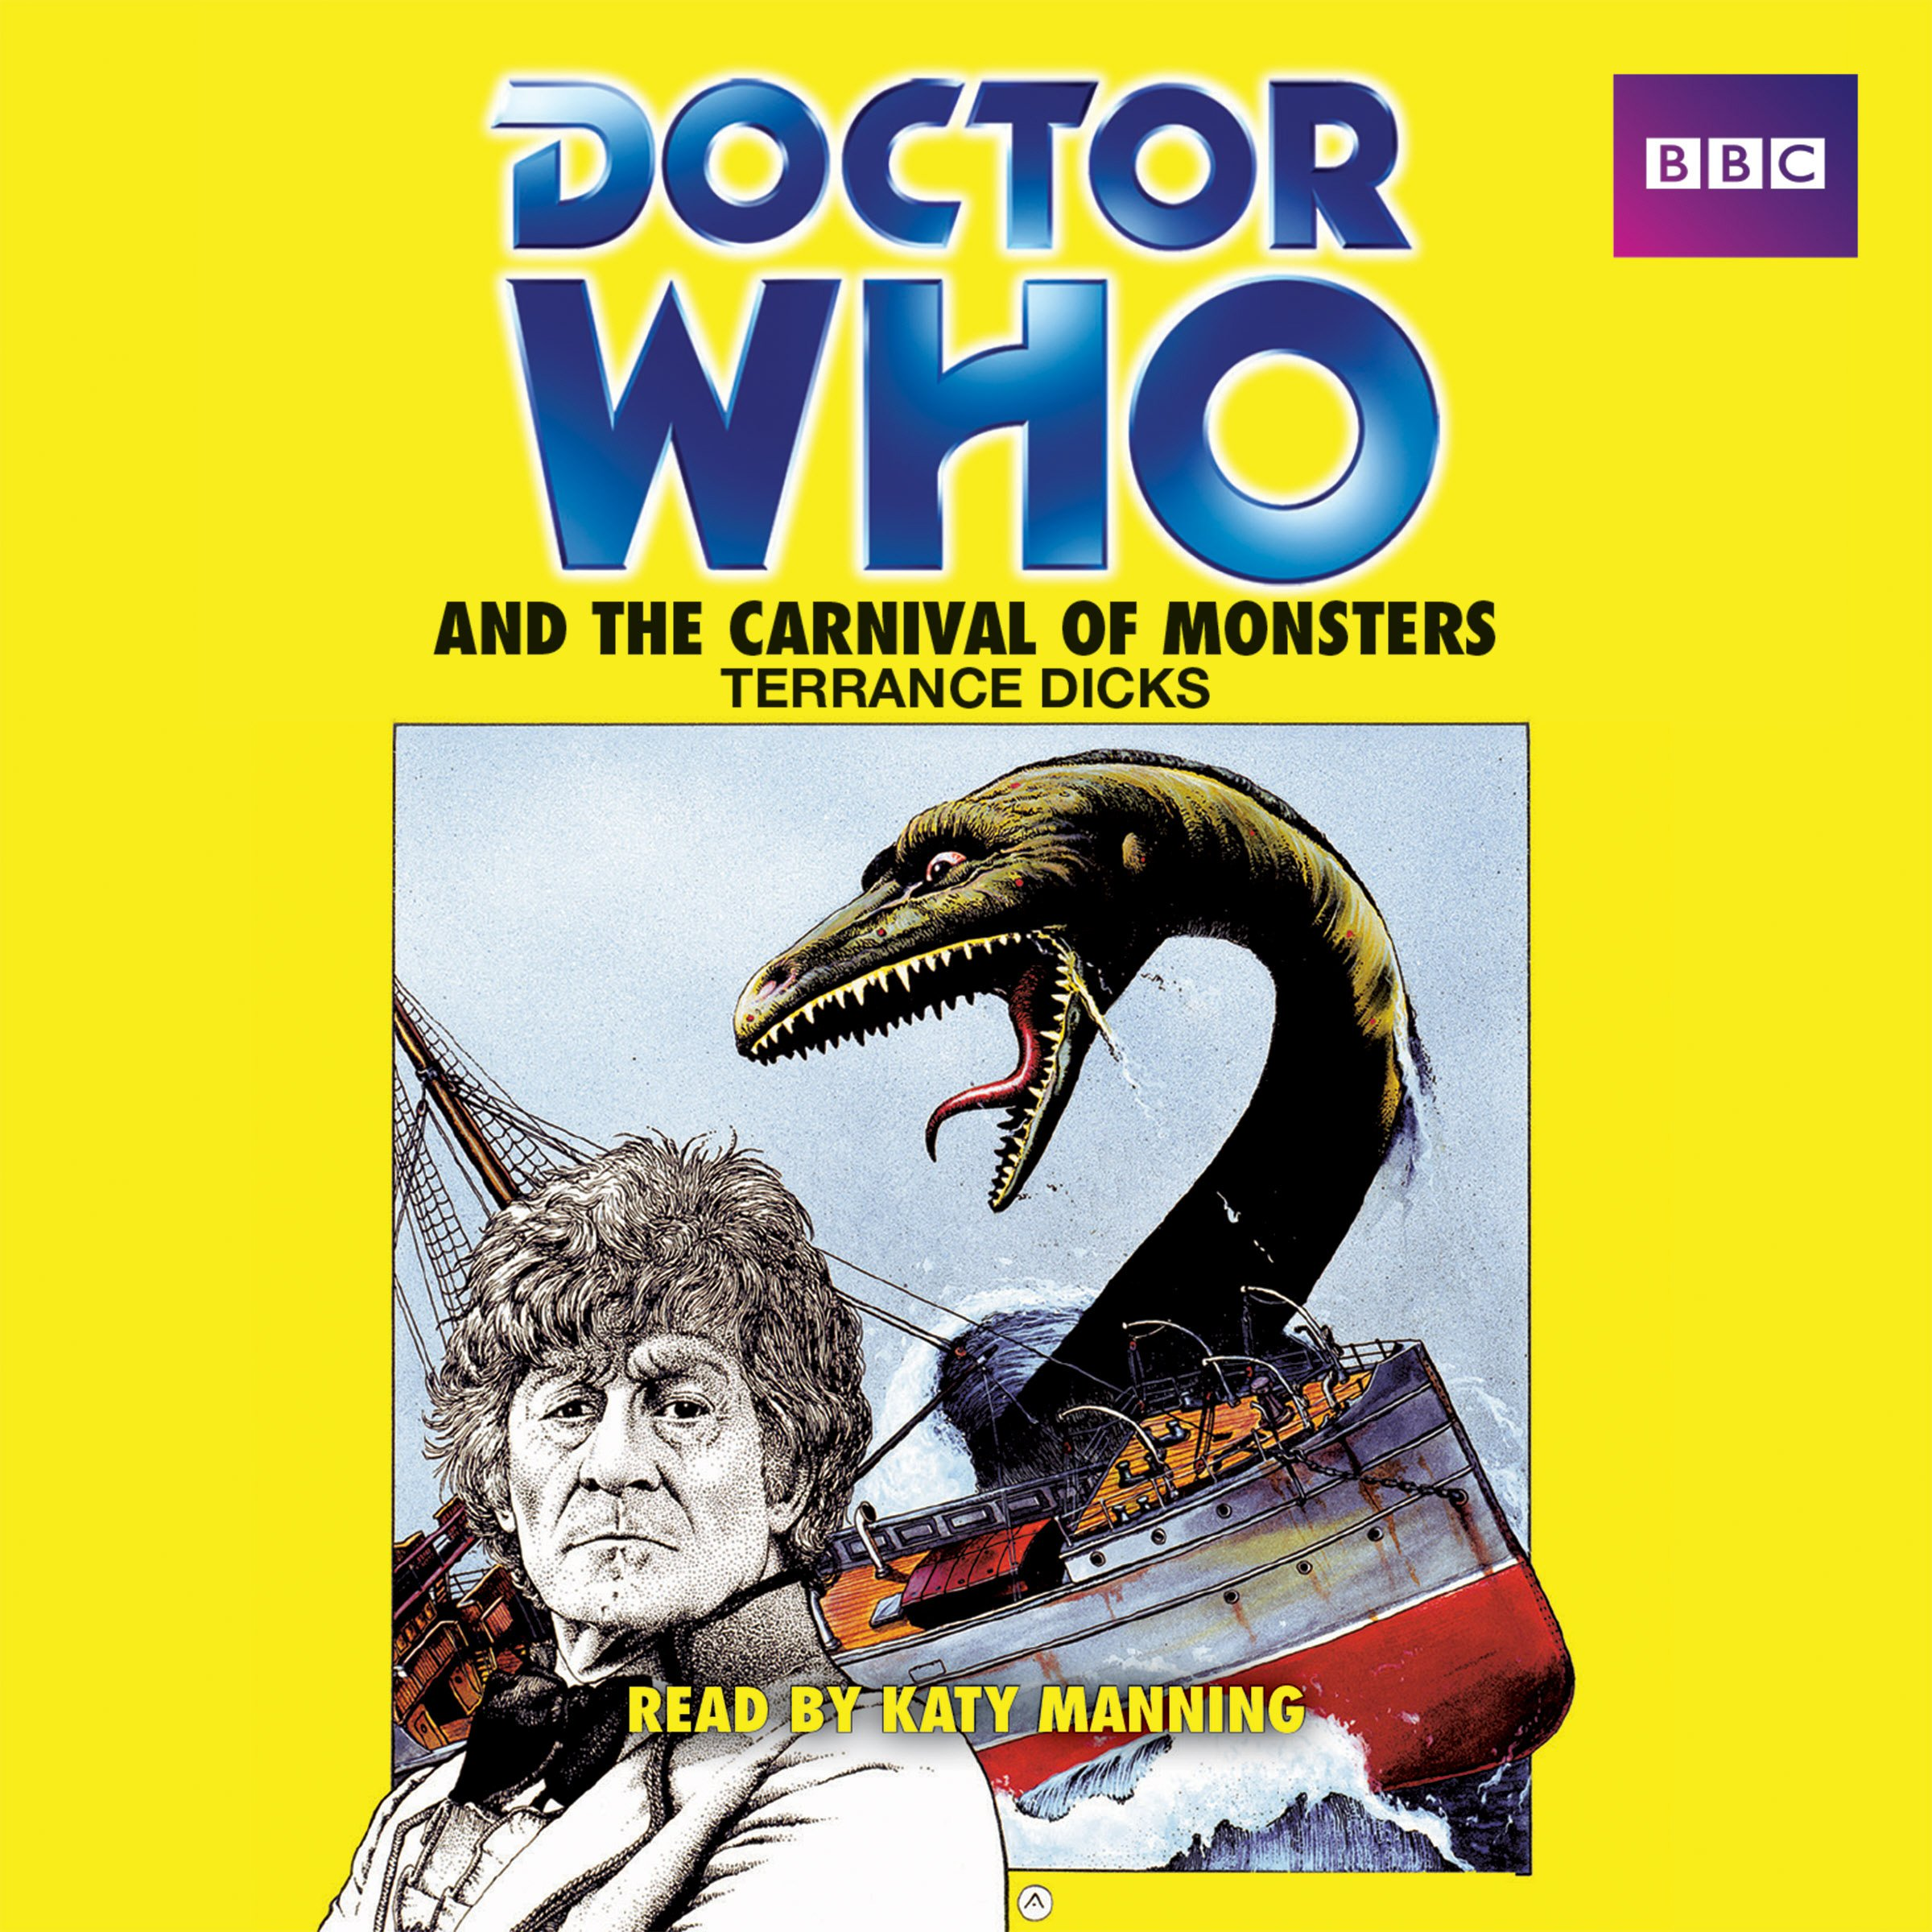 Doctor Who and the Carnival of Monsters (Credit: BBC)